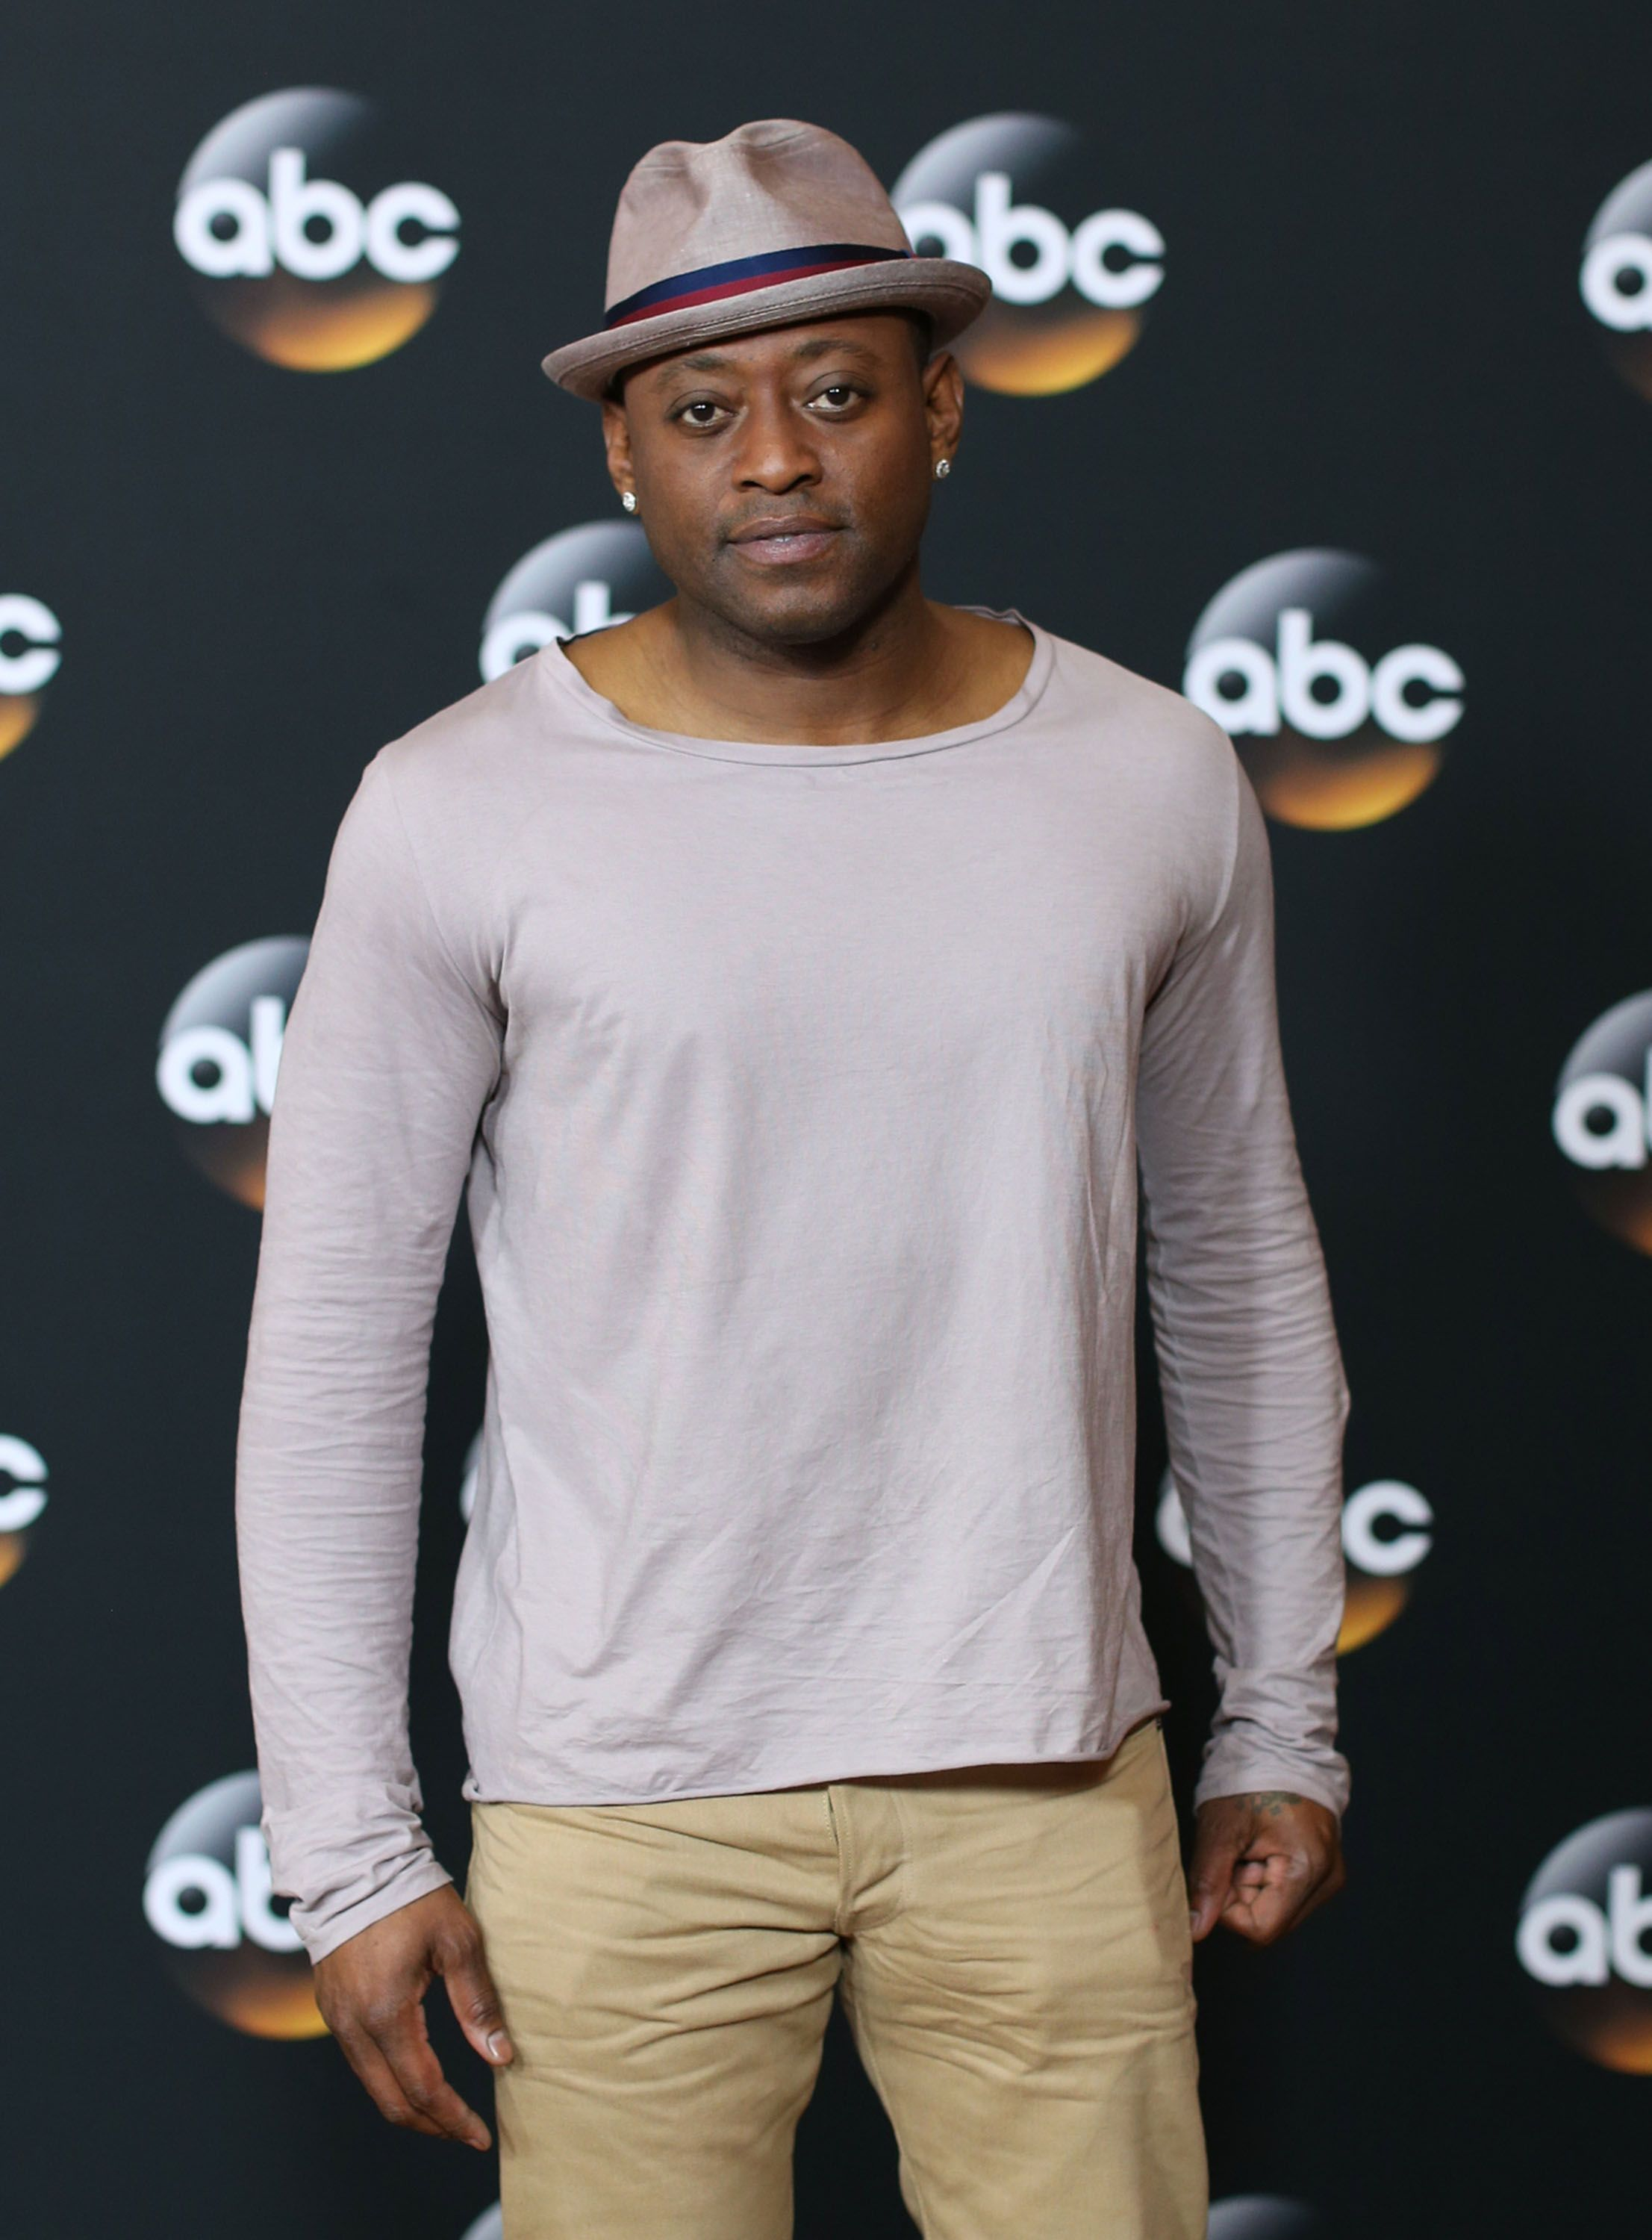 Omar Epps attends the Disney & ABC Television Group's TCA Summer Press Tour on July 15, 2014. | Source: Getty Images